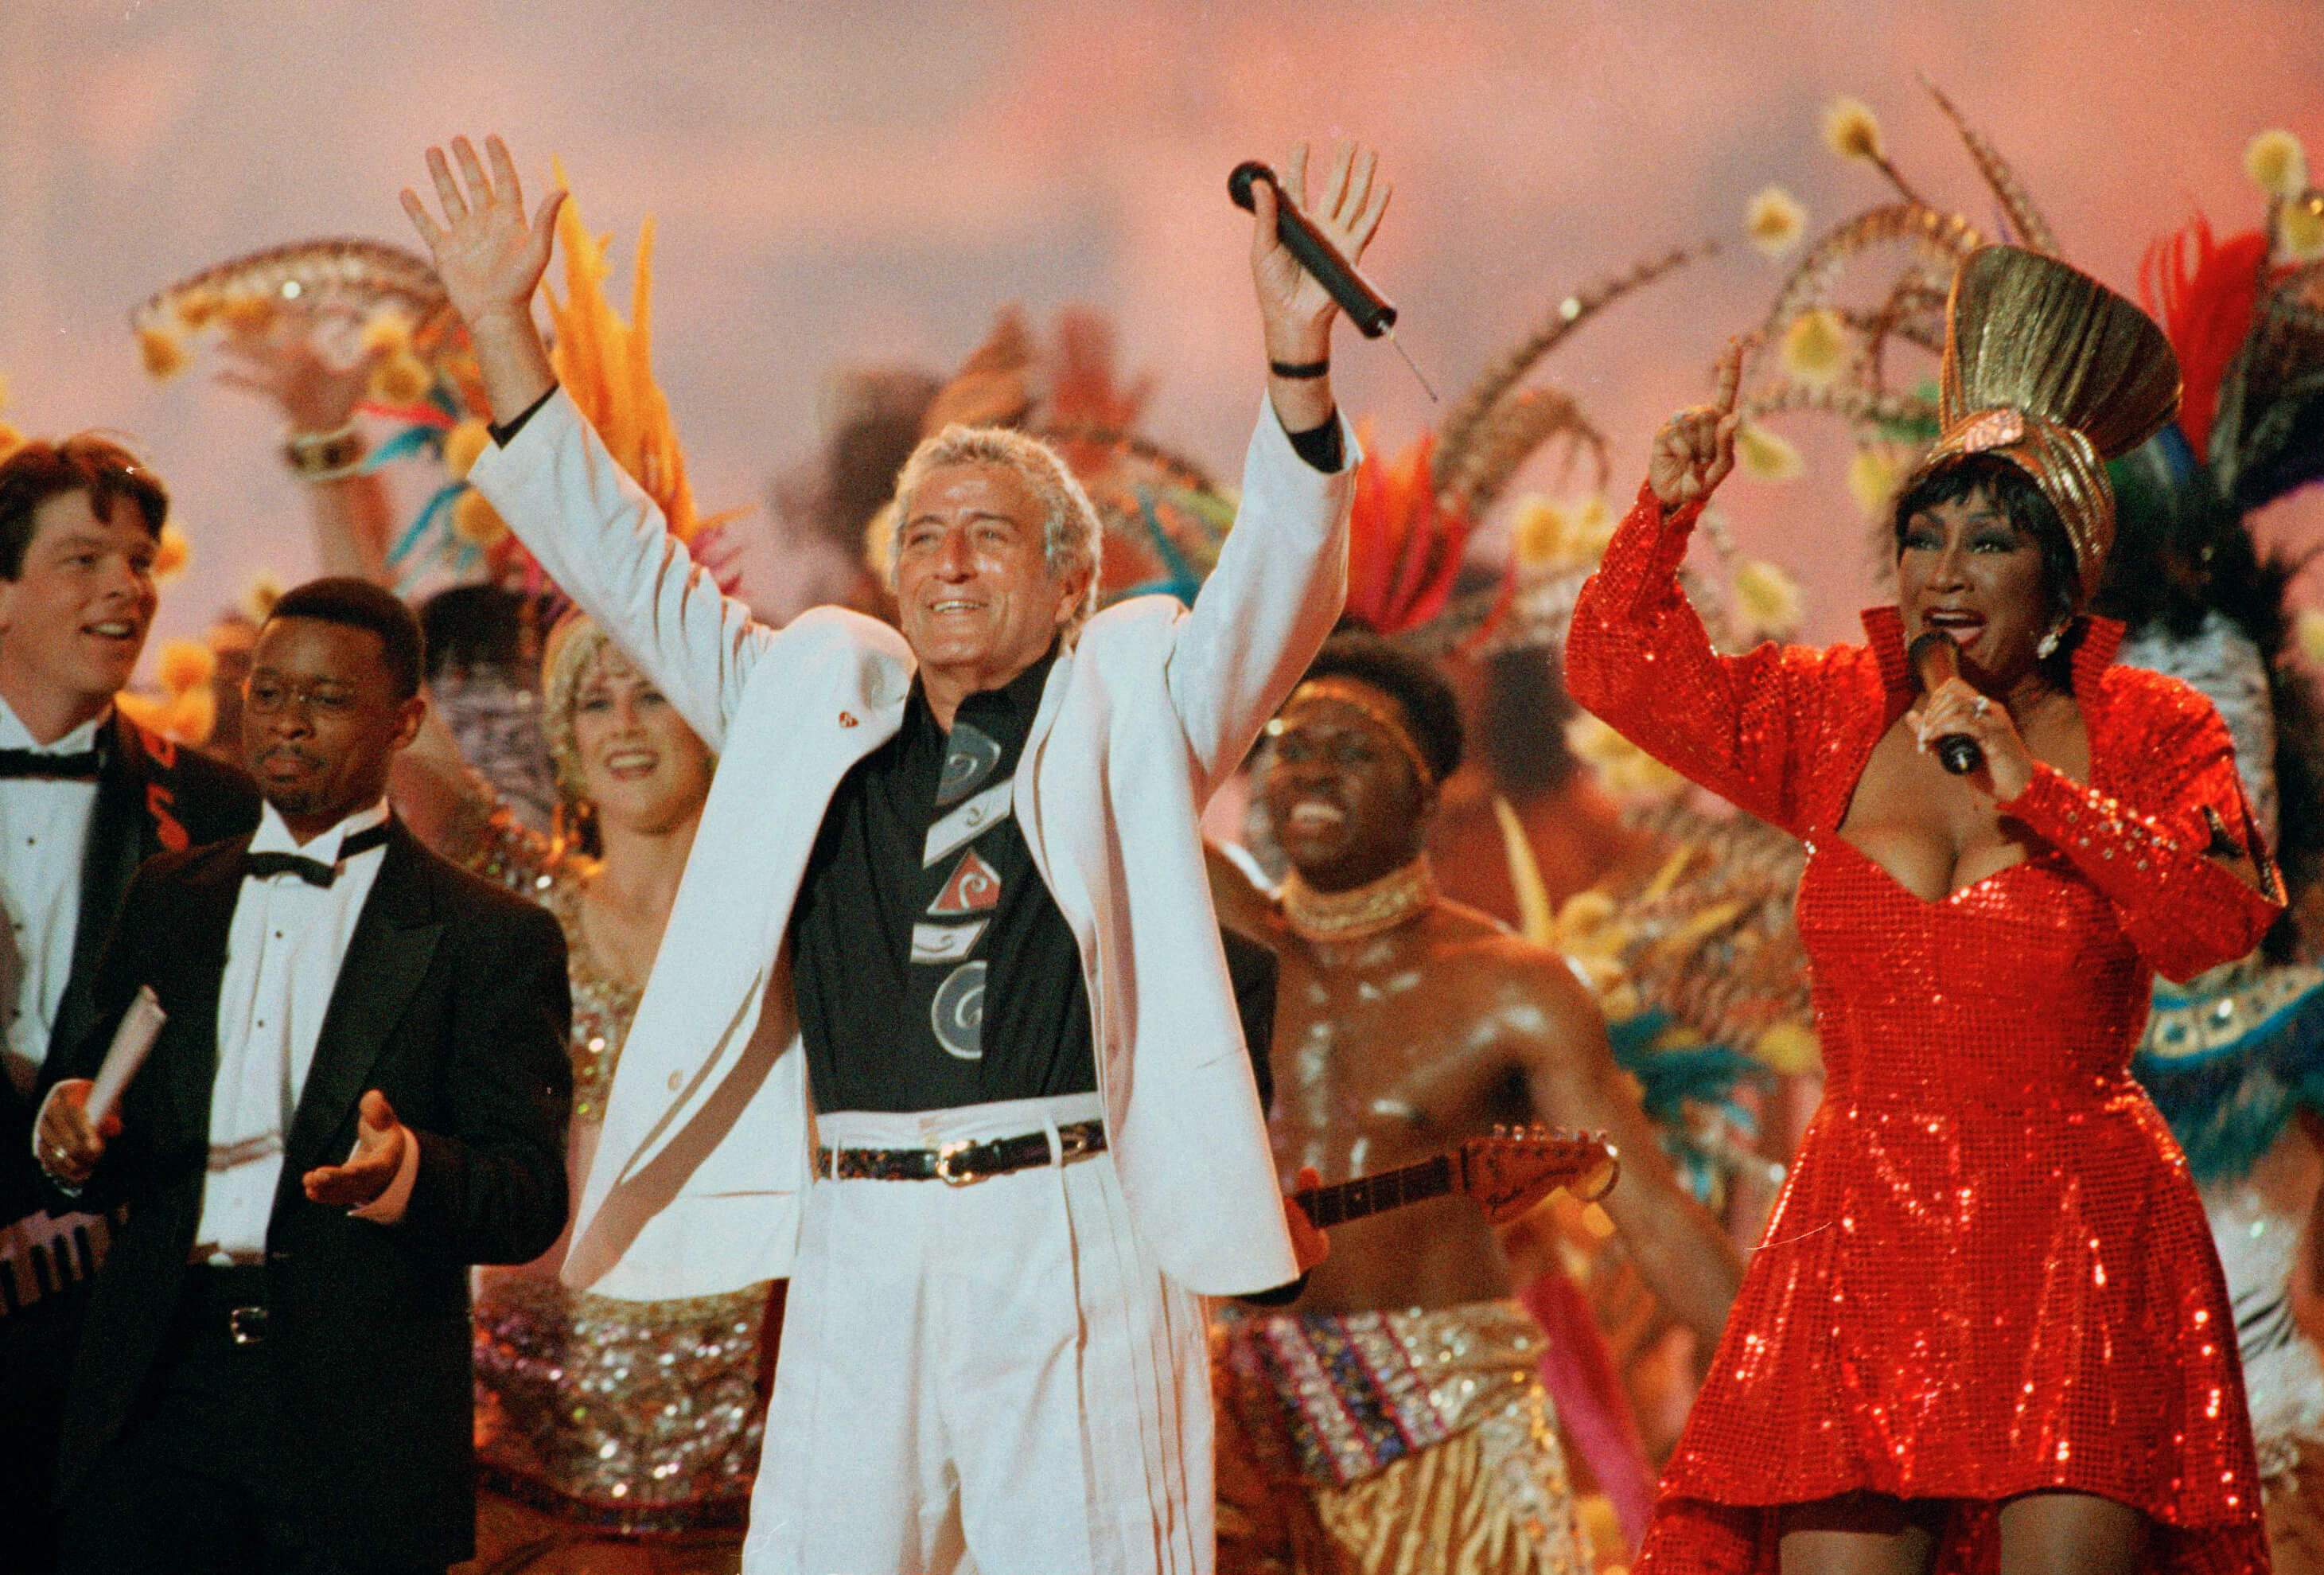 The Indian Jones theme made these two legendary singers one of the worst Superbowl halftime singers